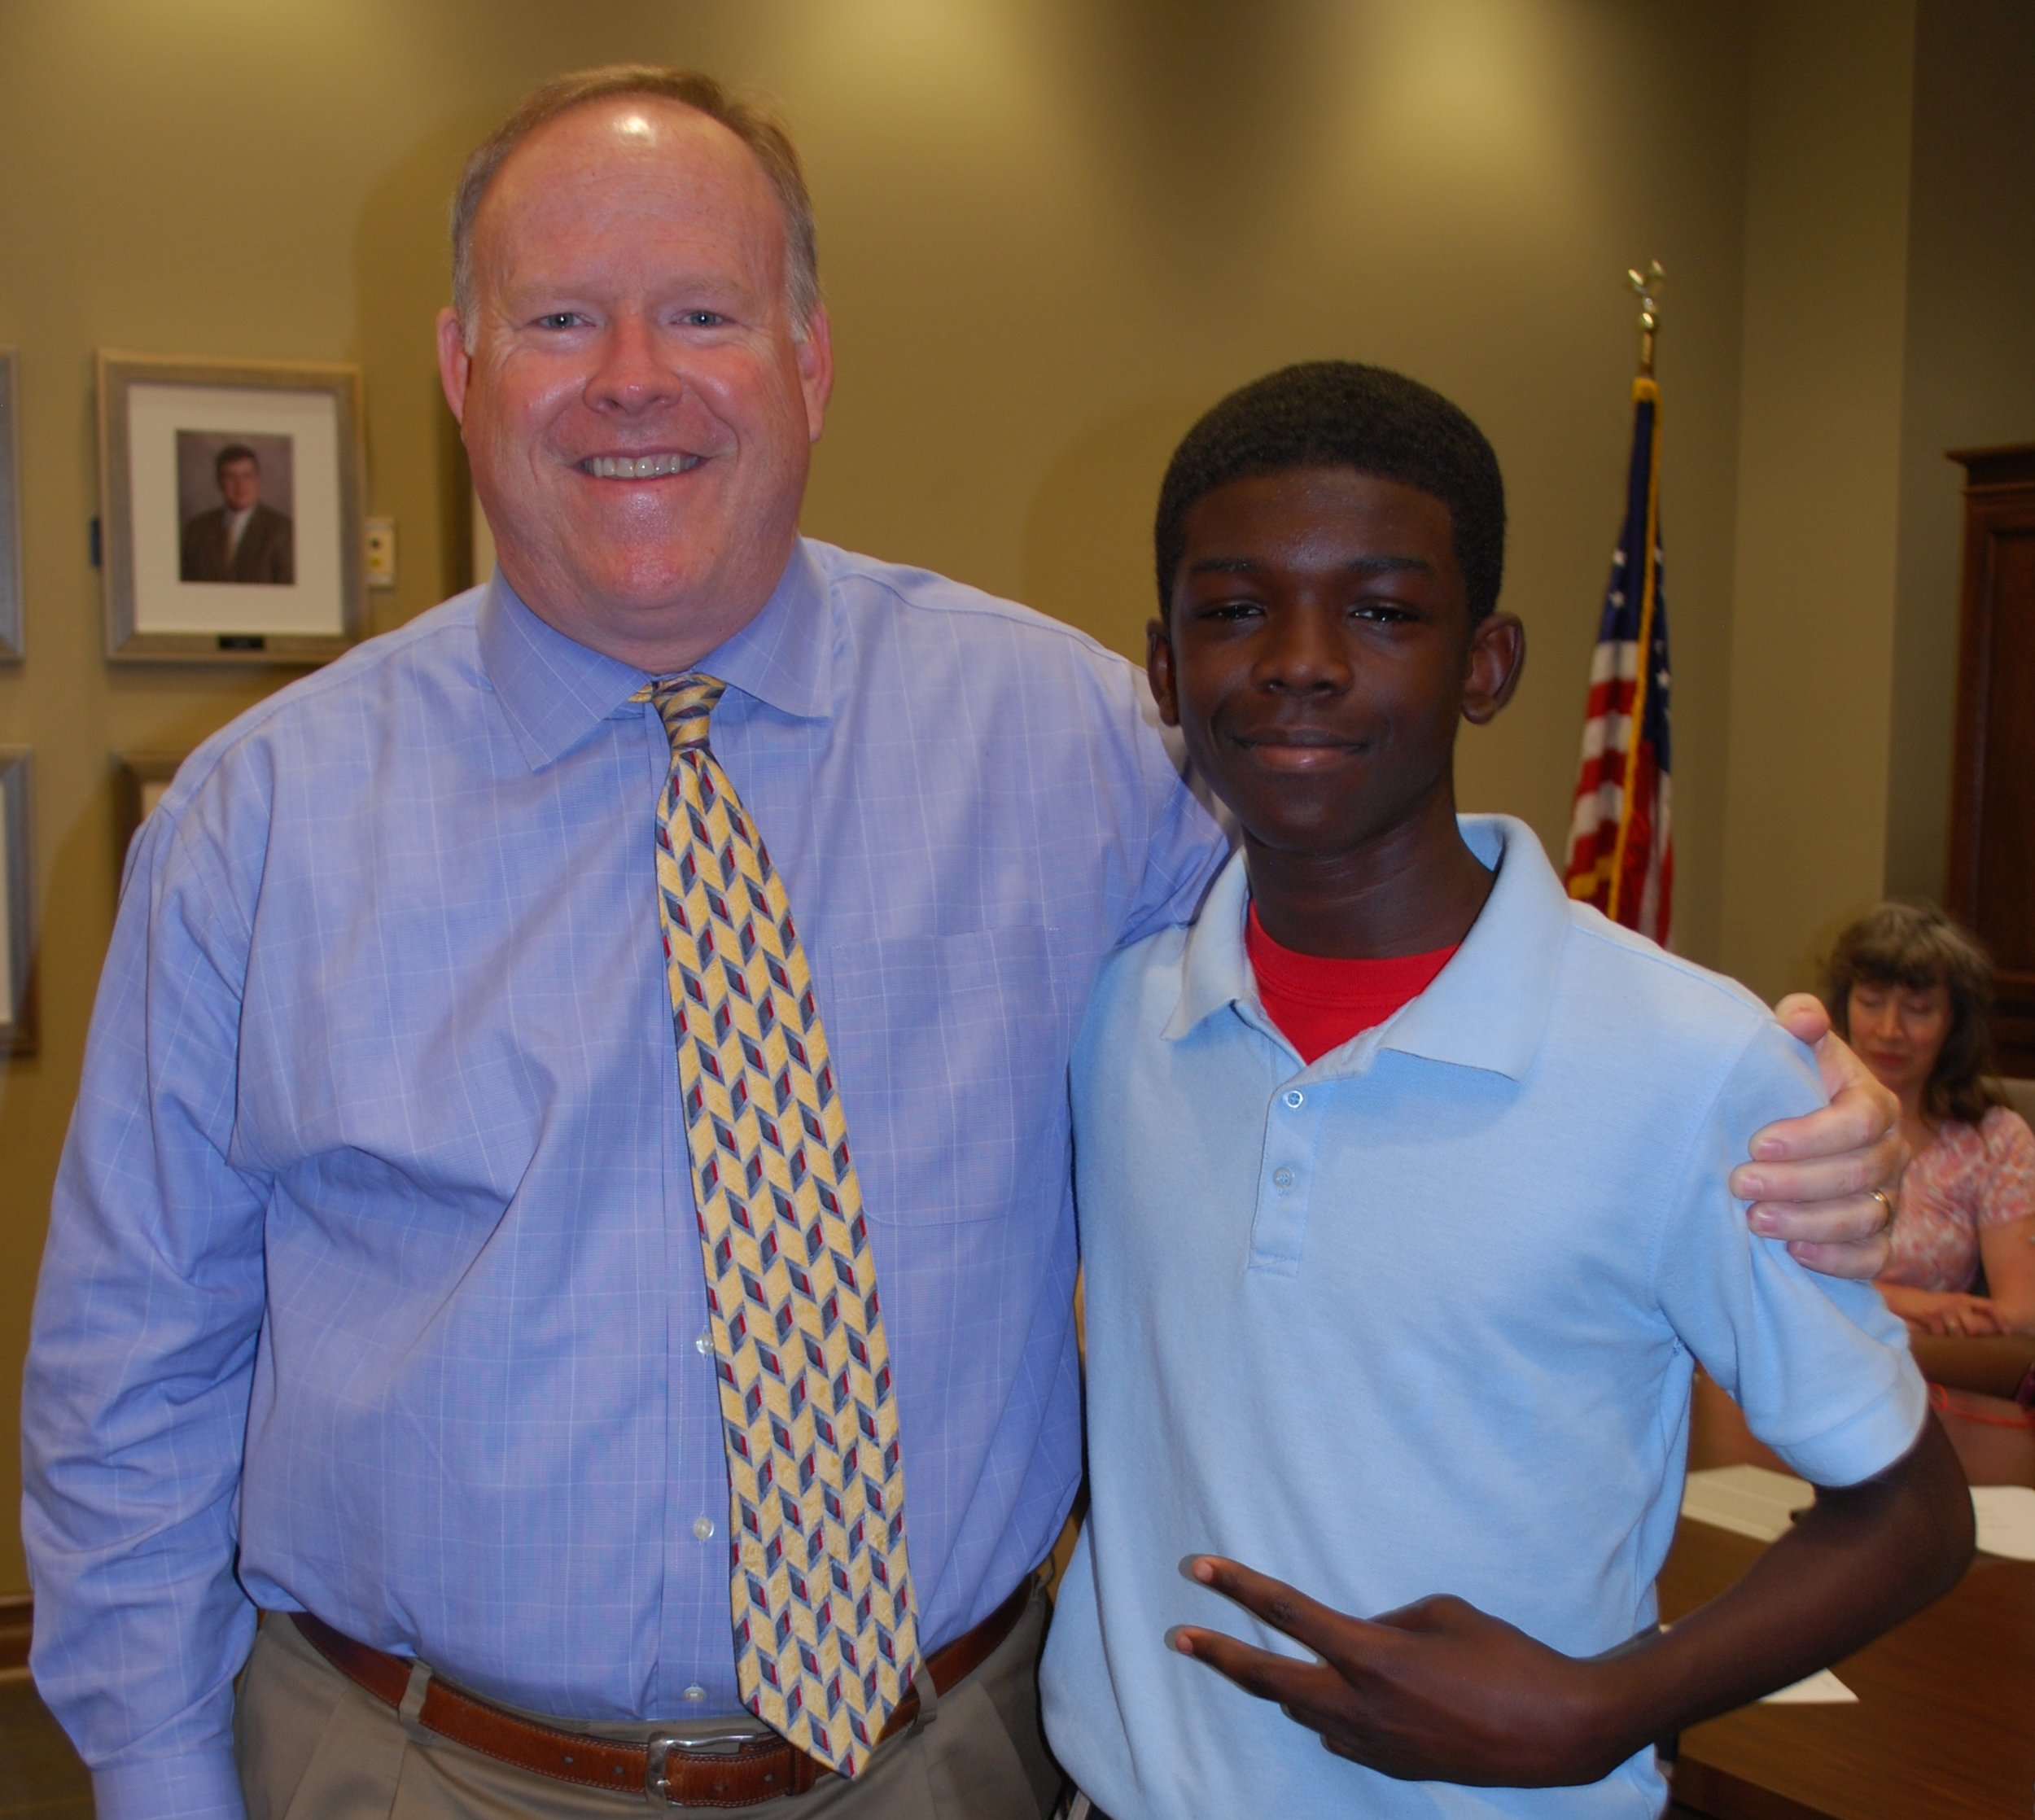 """Big Brother Jeff and Little Brother Ervin began their friendship one year ago through the BBBS Workplace Mentoring Program. They immediately connected very well, and after one month matched, Jeff told BBBS staff that they had found the """"perfect match"""" for him!  You may see Jeff teaching Ervin how to start a business, how to run new football plays, and how to overcome some of life's challenges.  As the City Manager of Vestavia Hills, Alabama, Jeff has encouraged many other Big Brothers and Big Sisters to participate in the program, and he is eager to continue with the Workplace Mentoring Program at City Hall for many years to come.  As Ervin gets to visit Jeff at Vestavia Hills City Hall, Ervin says that he always loves """"going to Jeff's office and getting to sit in the big boss chair!"""" Jeff has enjoyed watching Ervin's football games and supporting him in all that he does. Jeff and Ervin are excited to continue to build their relationship for many years to come!"""